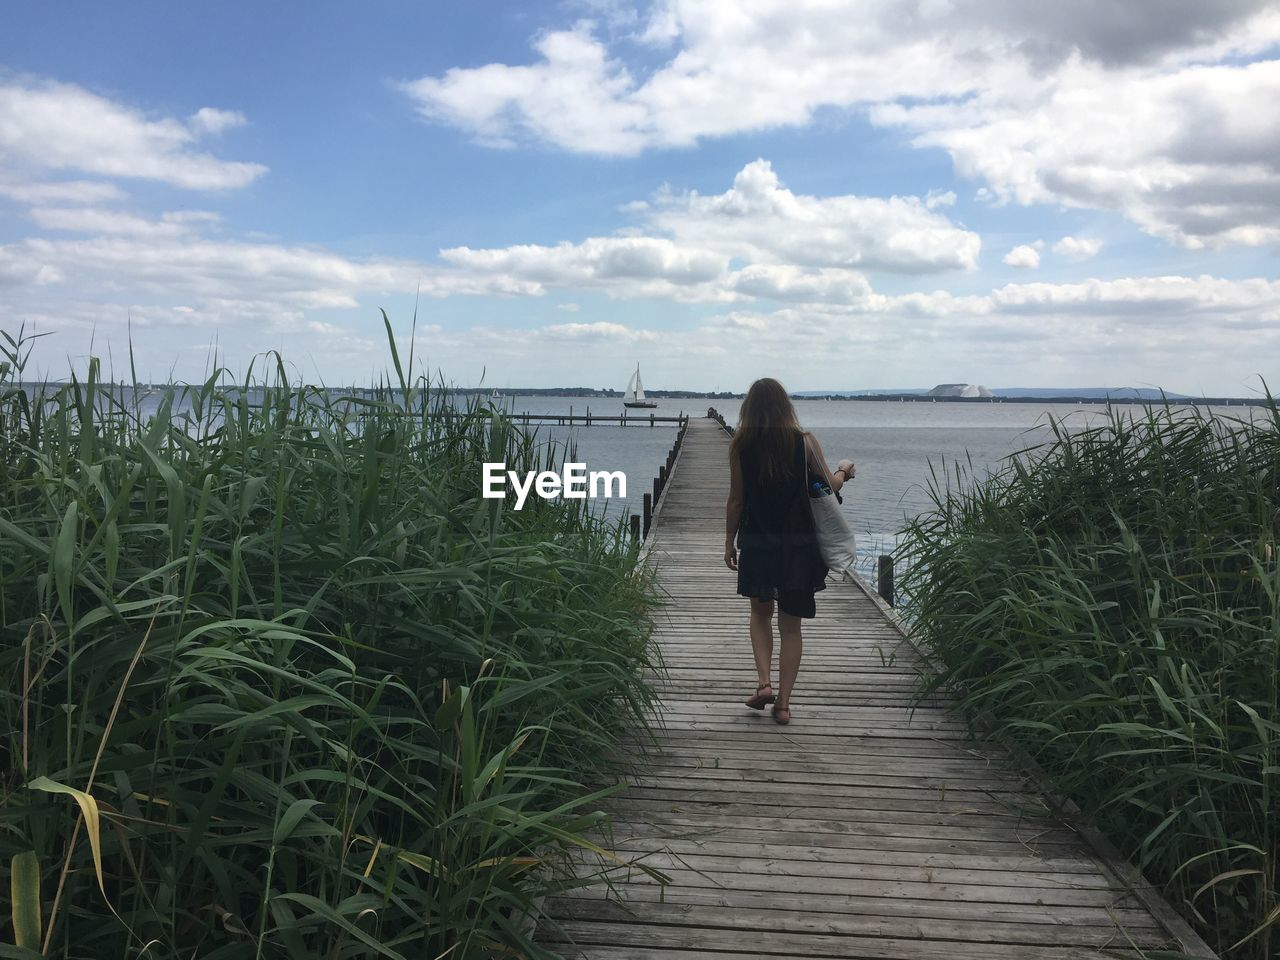 Full Length Rear View Of Woman Walking On Pier Amidst Plants Against Sea And Sky